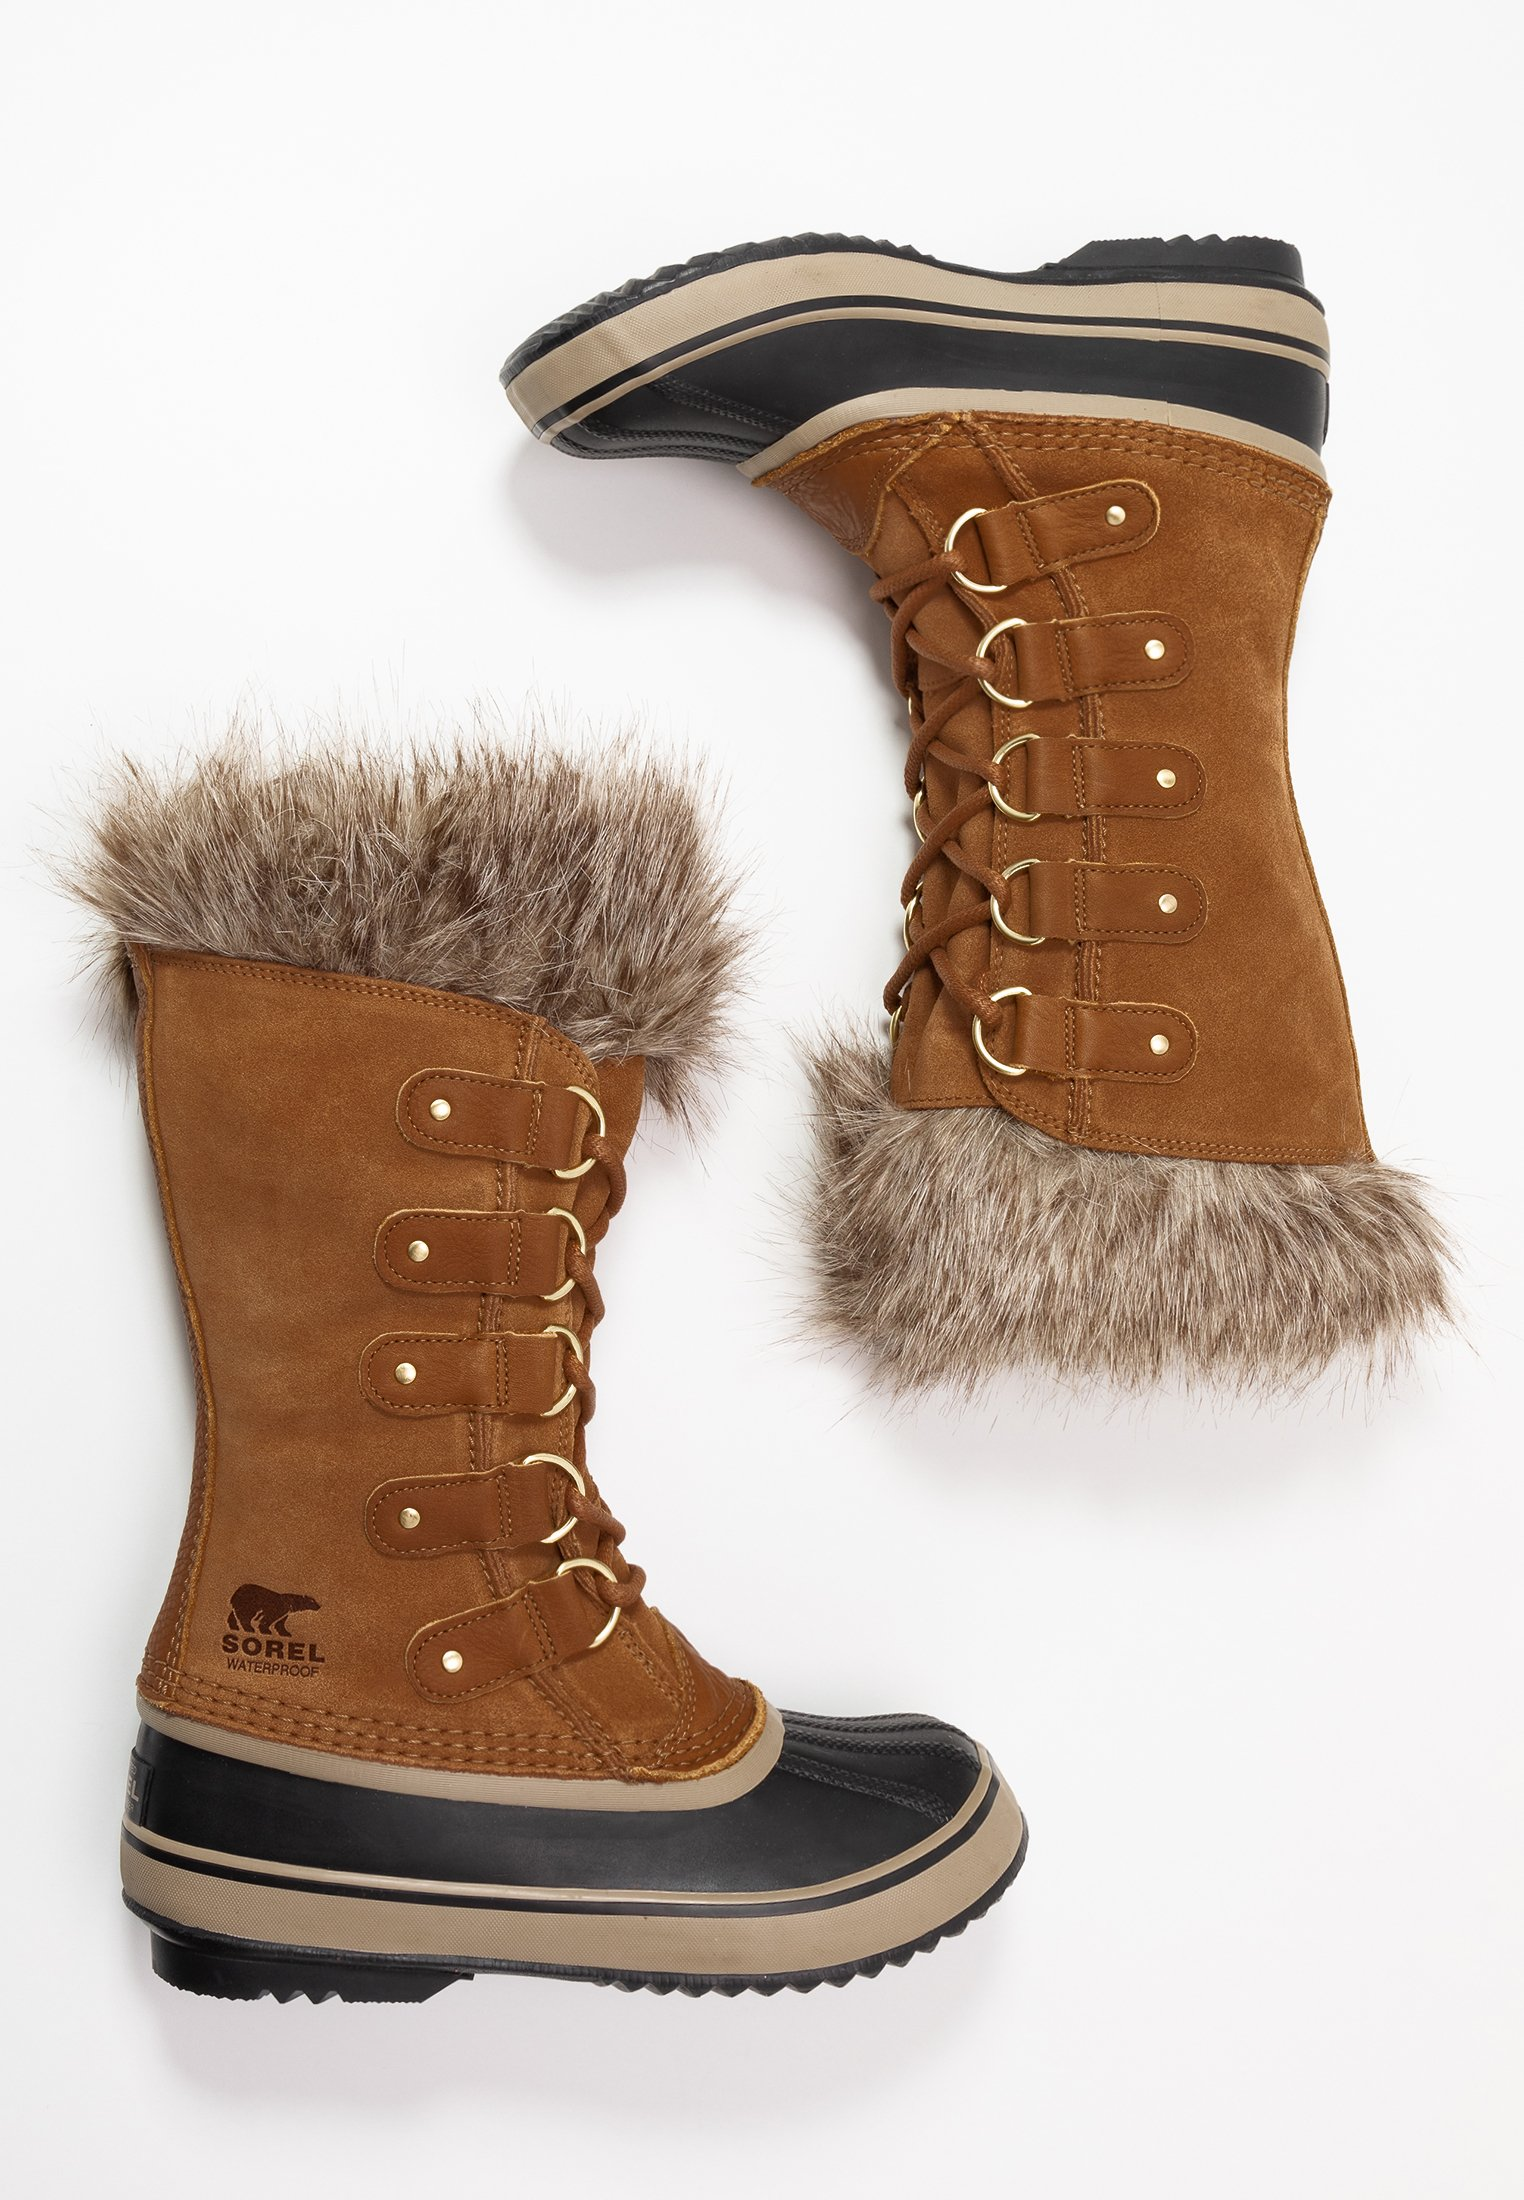 Sorel JOAN OF ARCTIC - Śniegowce - camel brown/black